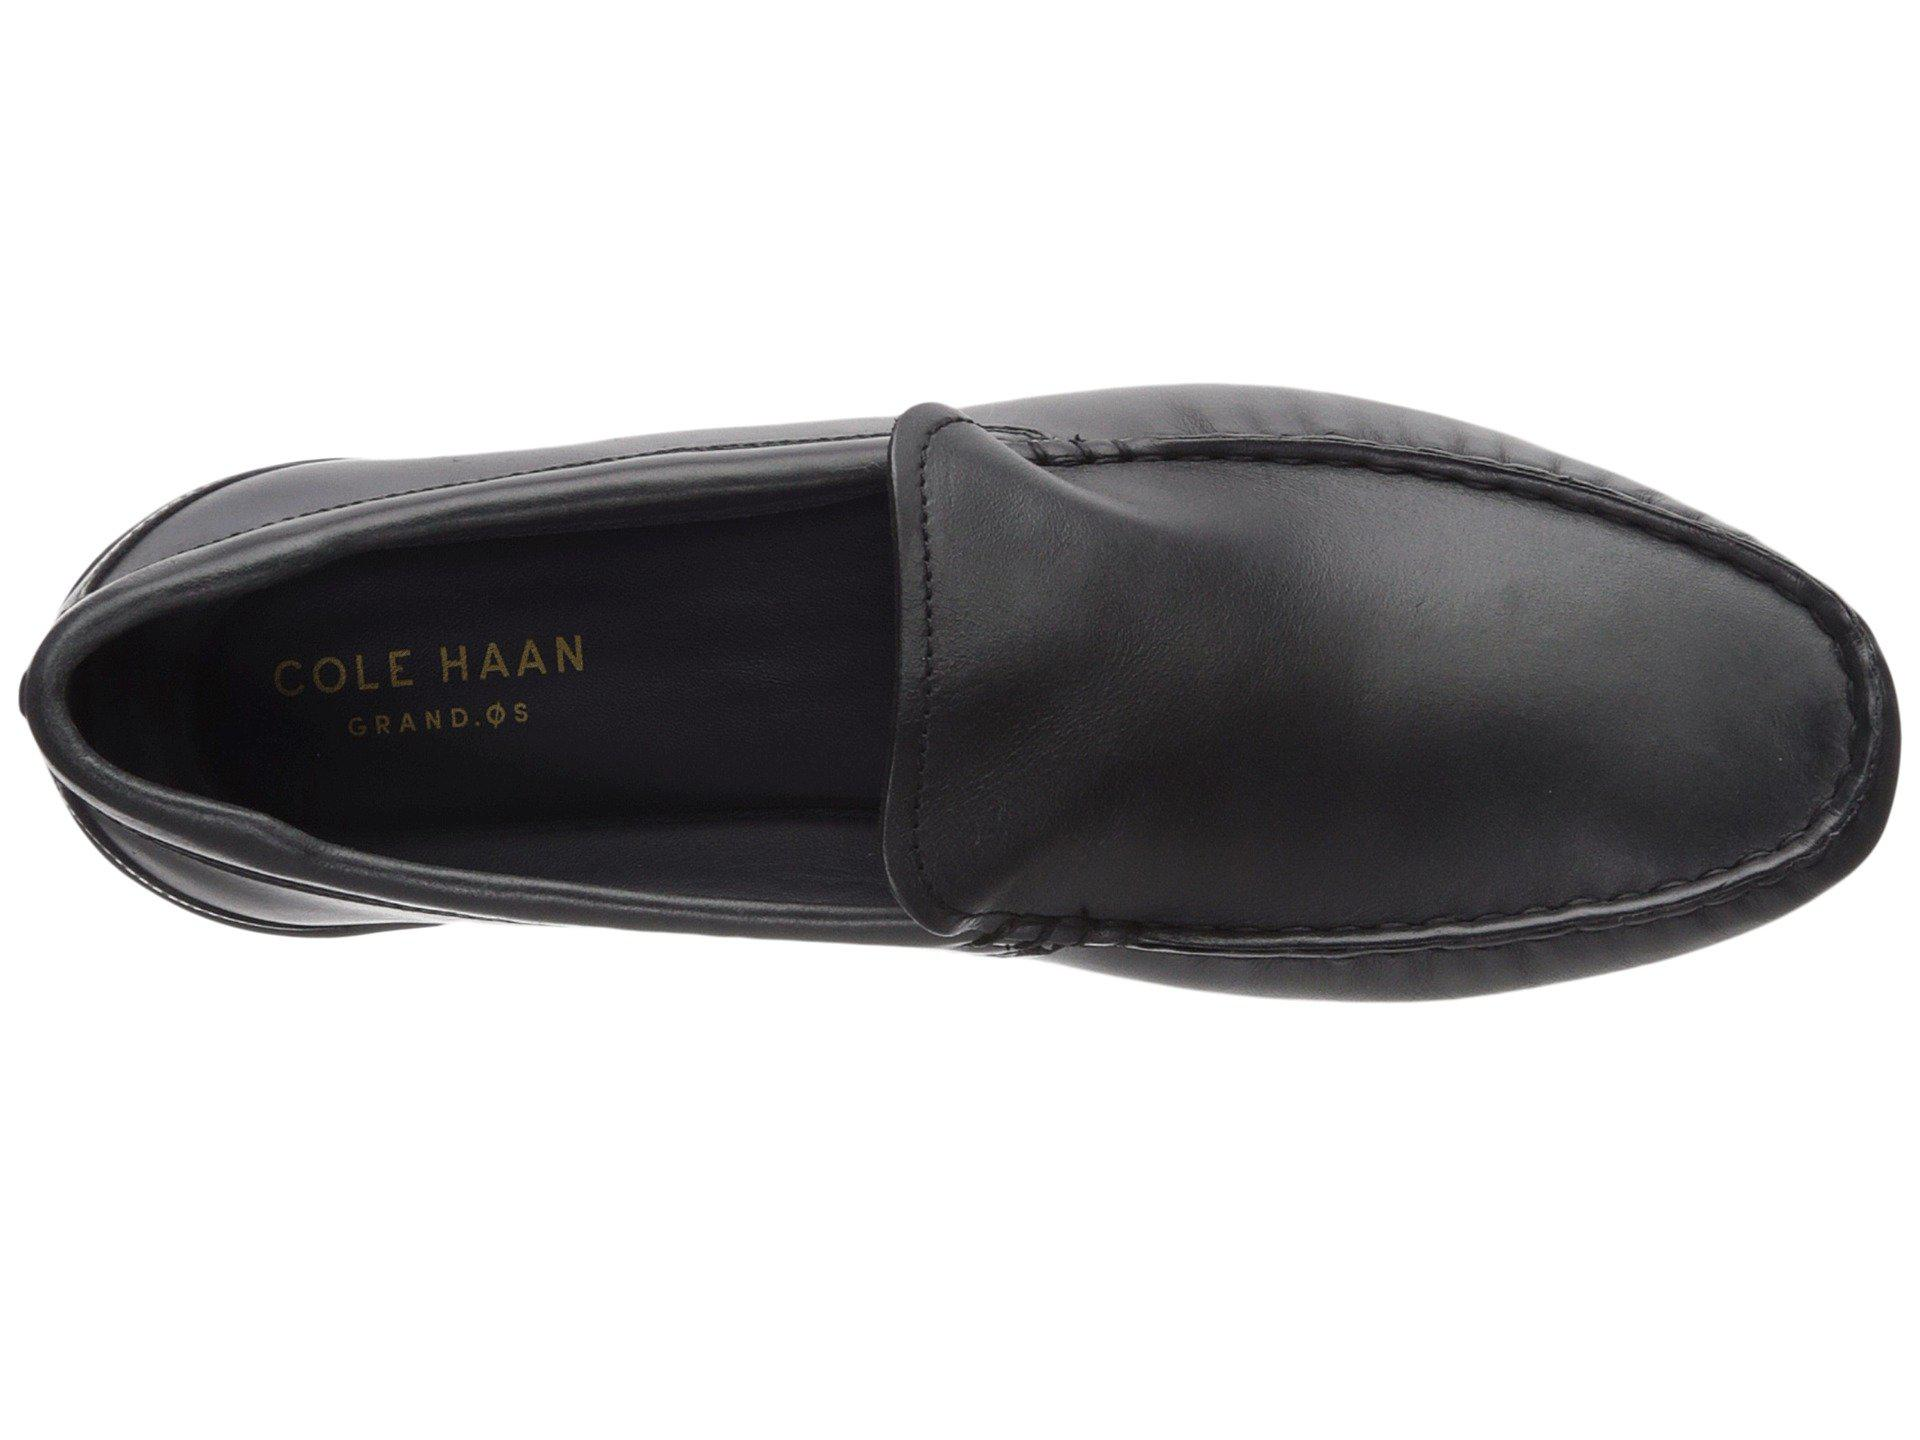 0f54fb21d52 Cole Haan - Black Branson Venetian Driver Driving Style Loafer for Men -  Lyst. View fullscreen